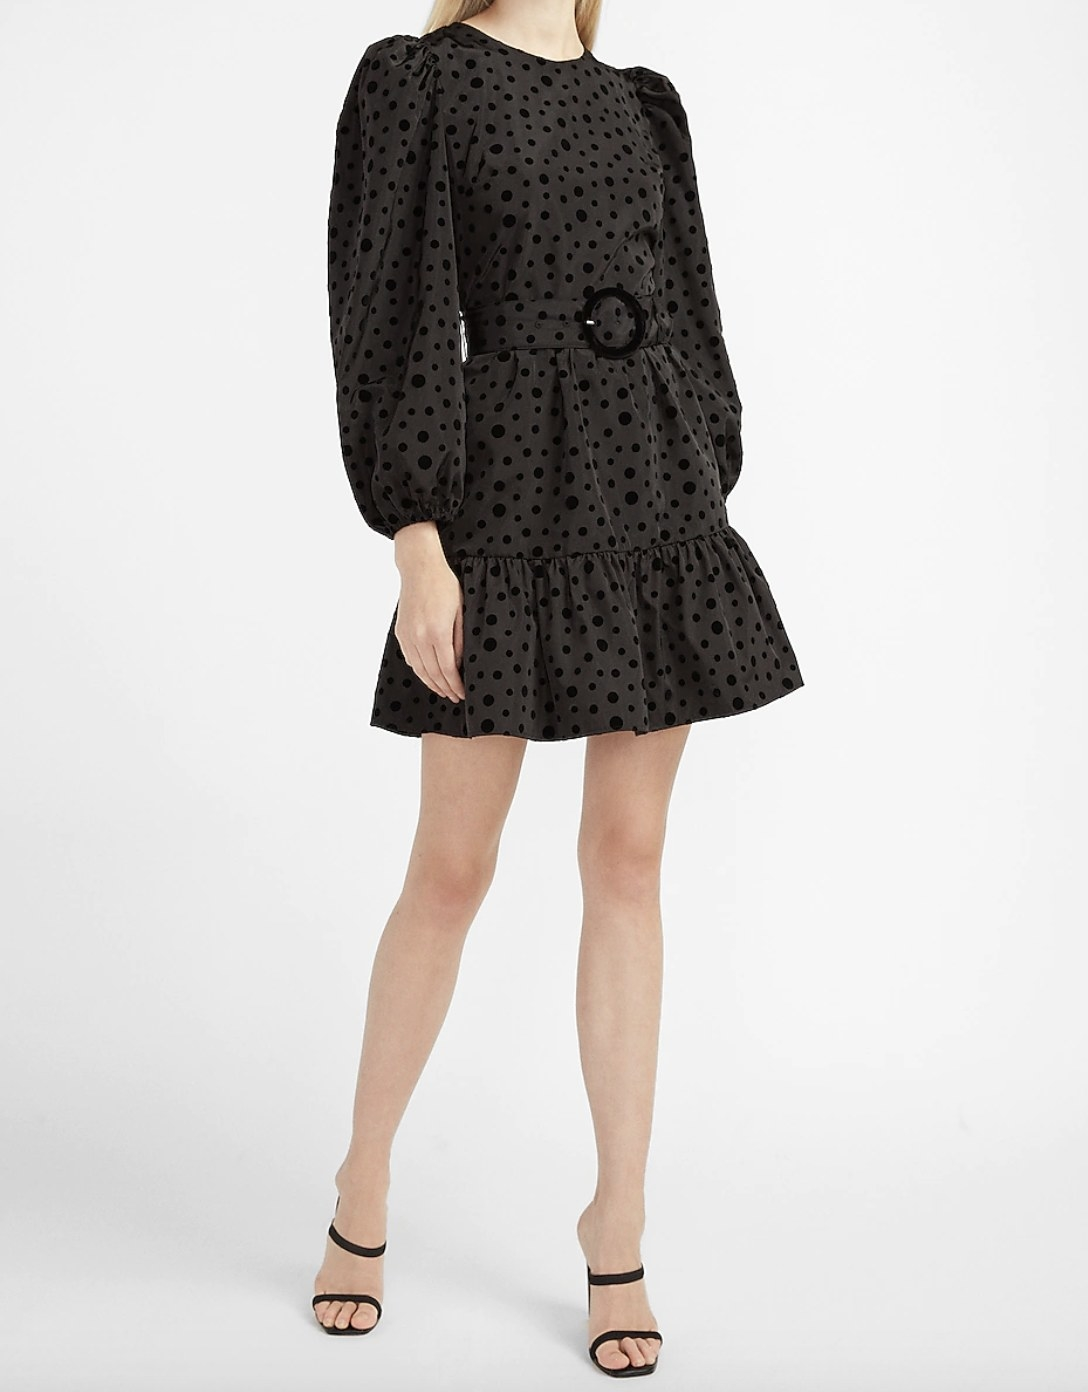 A belted polka dot dress with a circular belt in black